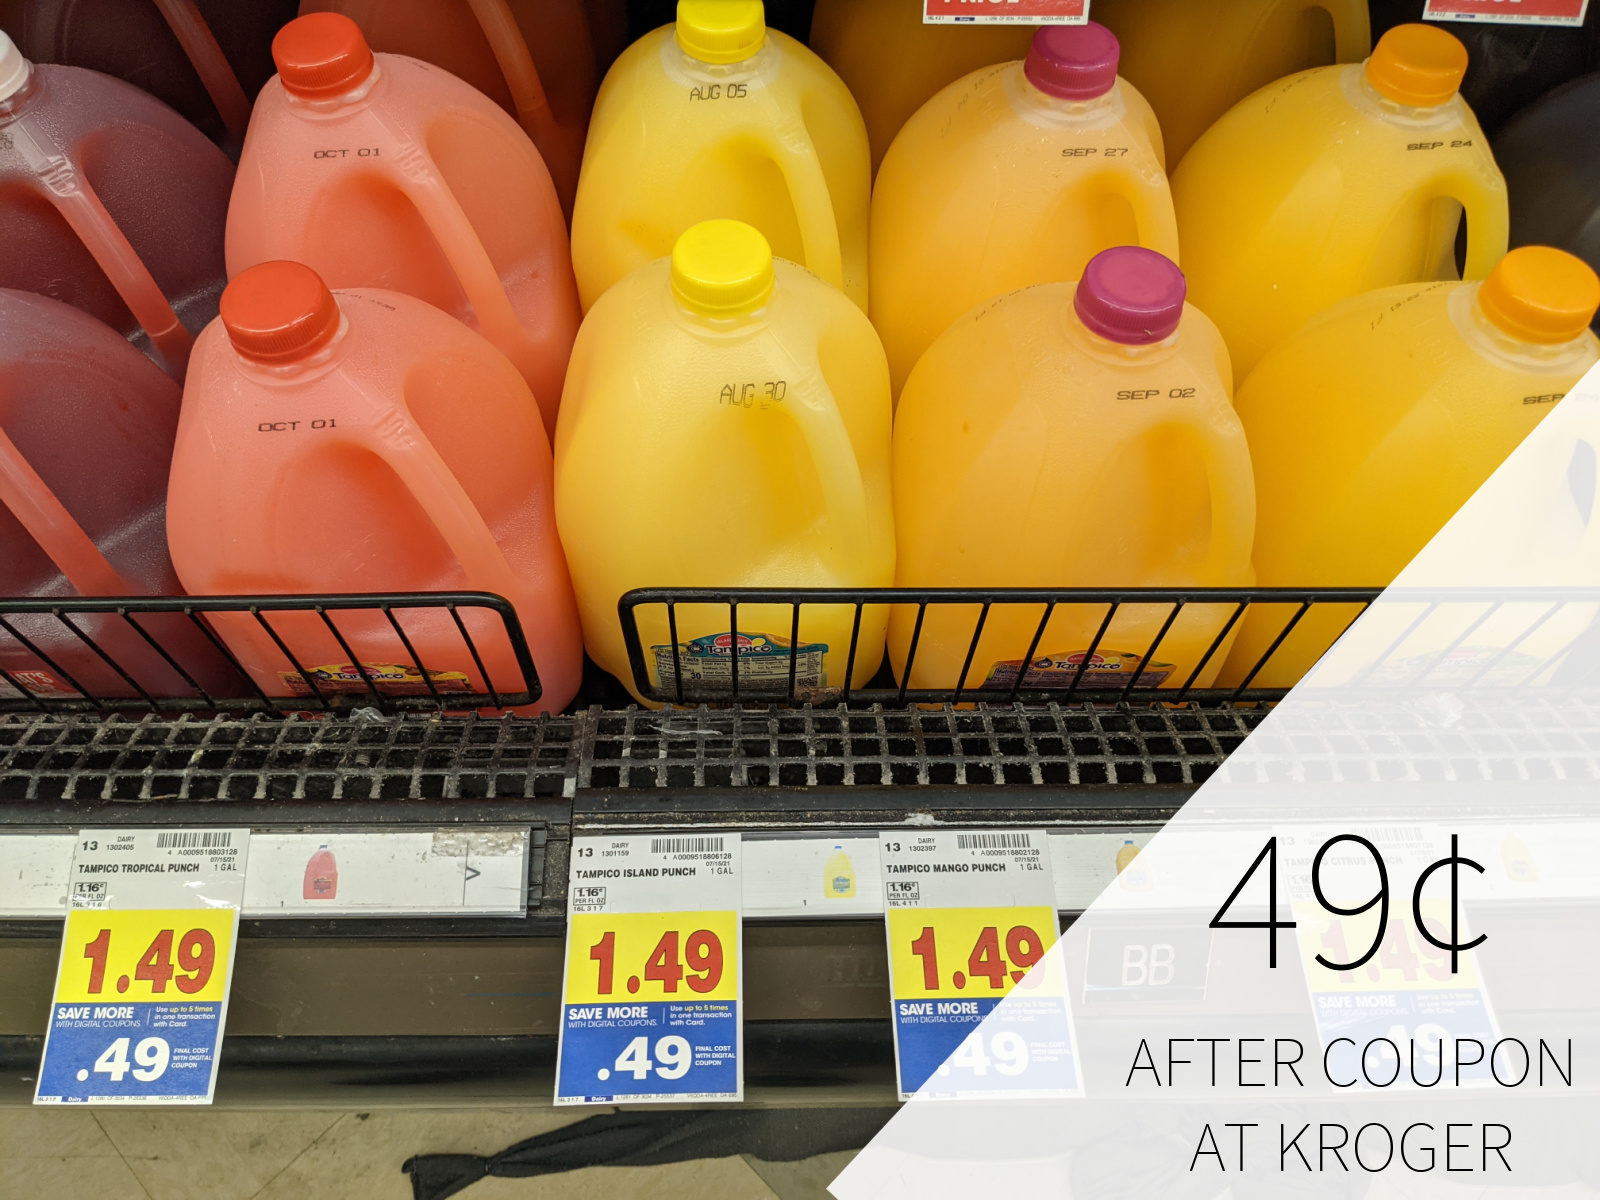 Tampico Punch Just 49$